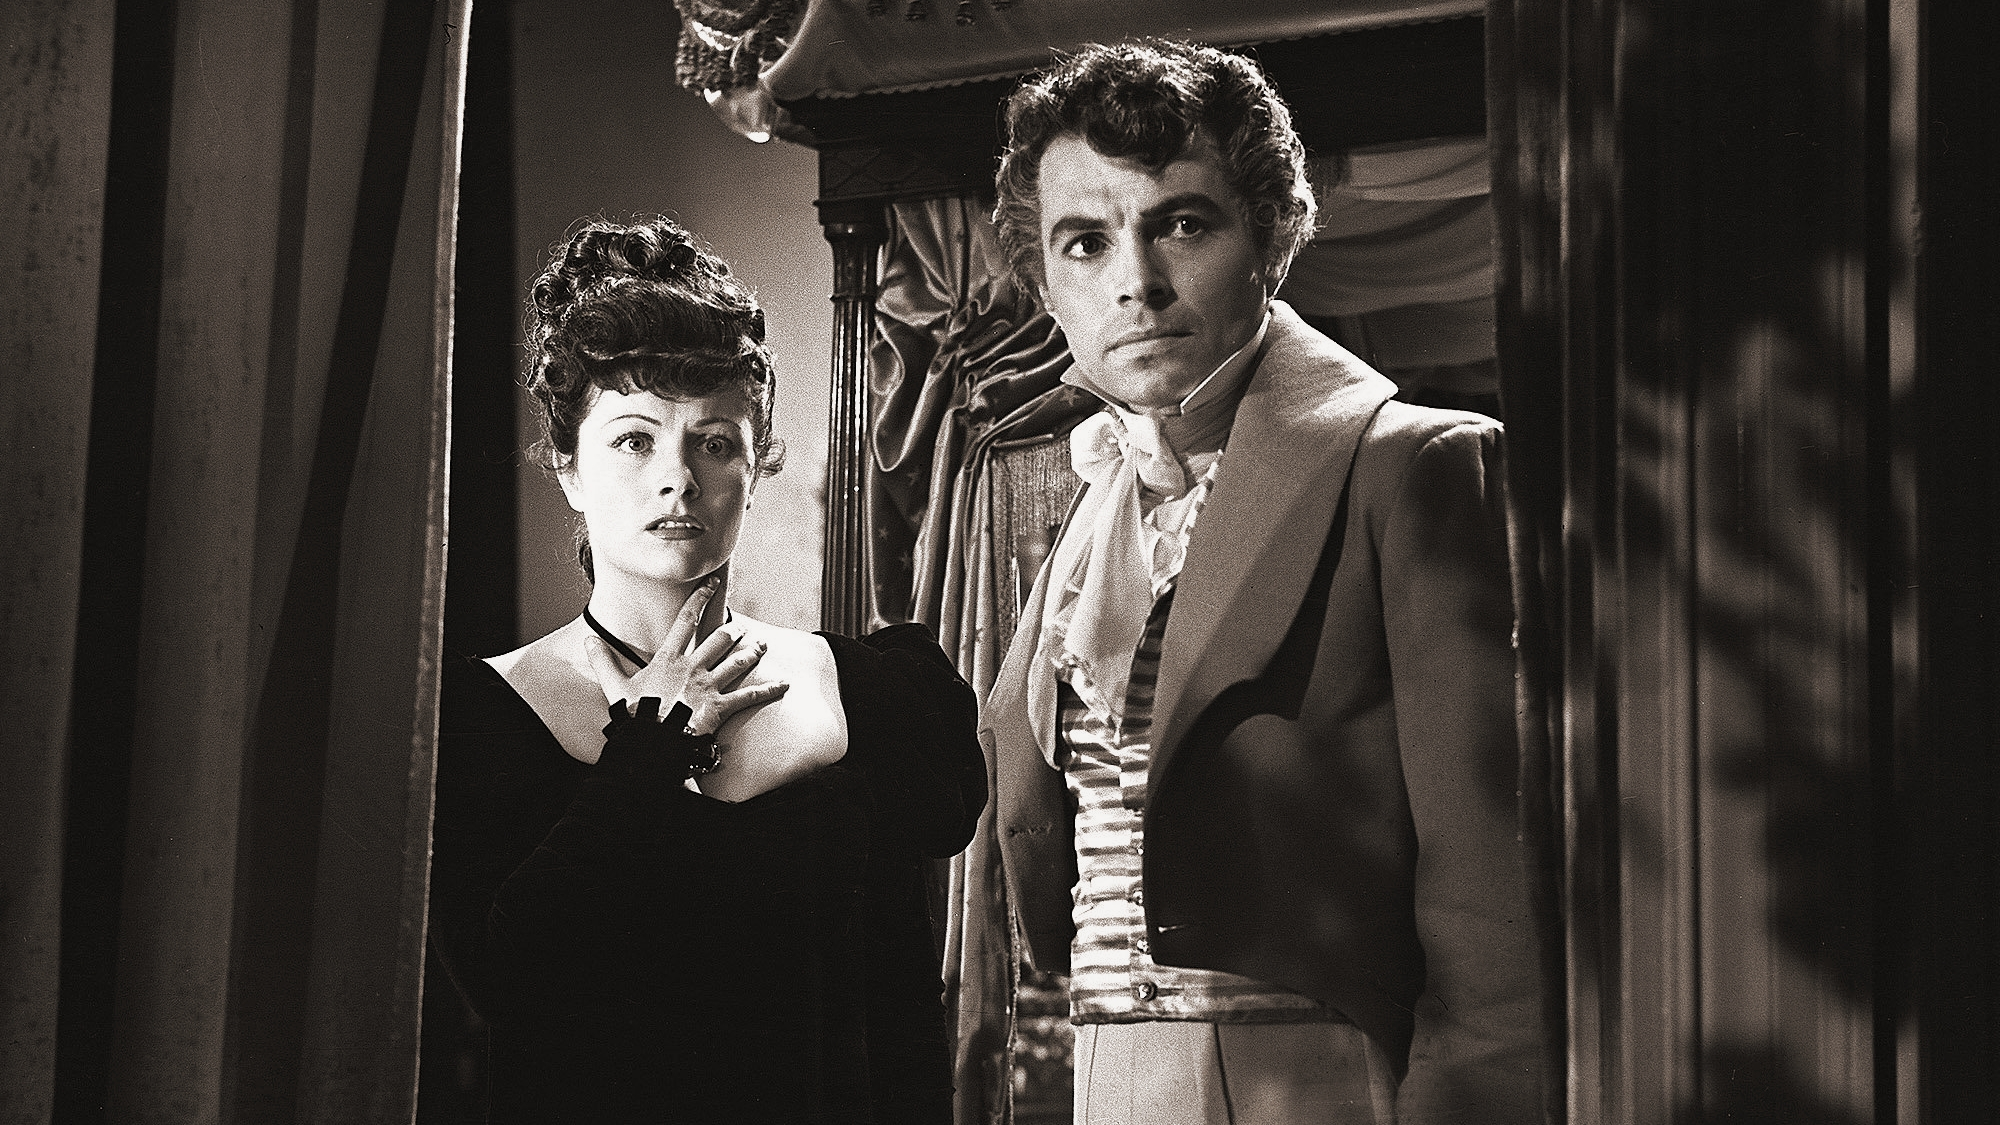 Hesther Shaw (Margaret Lockwood) and the Marquis of Rohan (James Mason) in a scene from Leslie Arliss's 1943 film, The Man in Grey